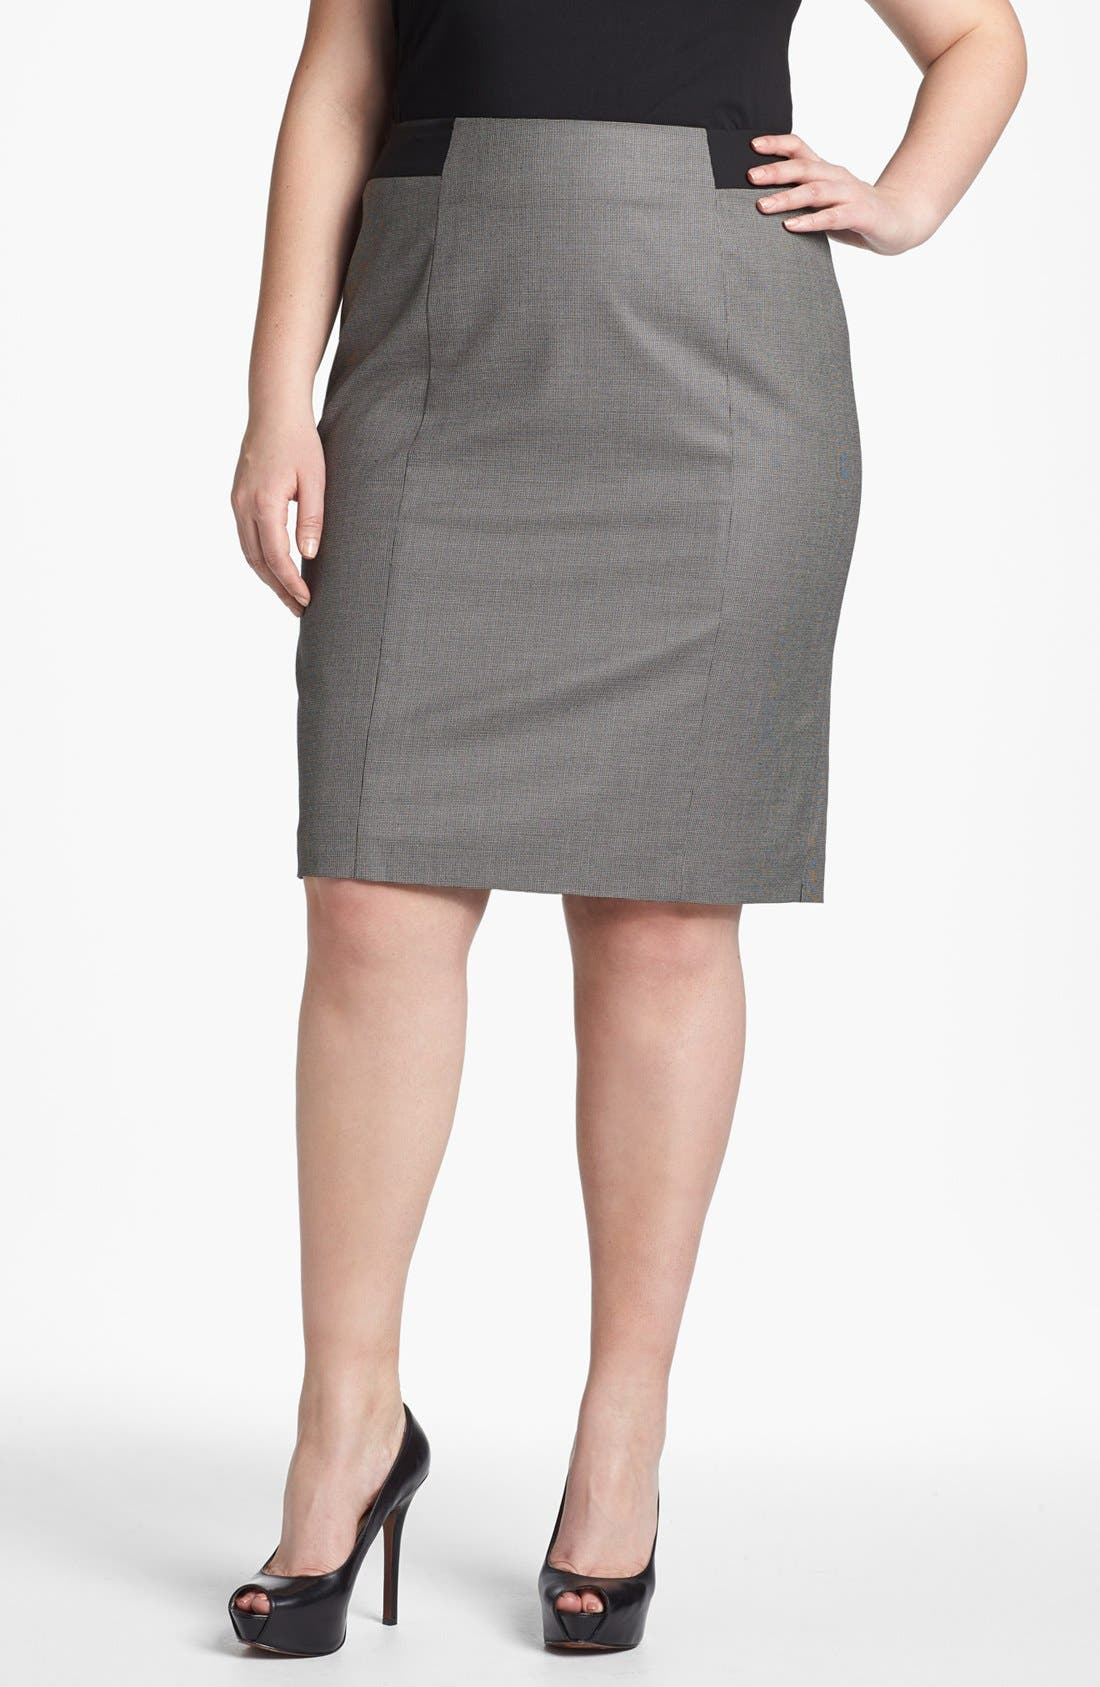 Alternate Image 1 Selected - Sejour 'Marcy' Pencil Skirt (Plus Size)